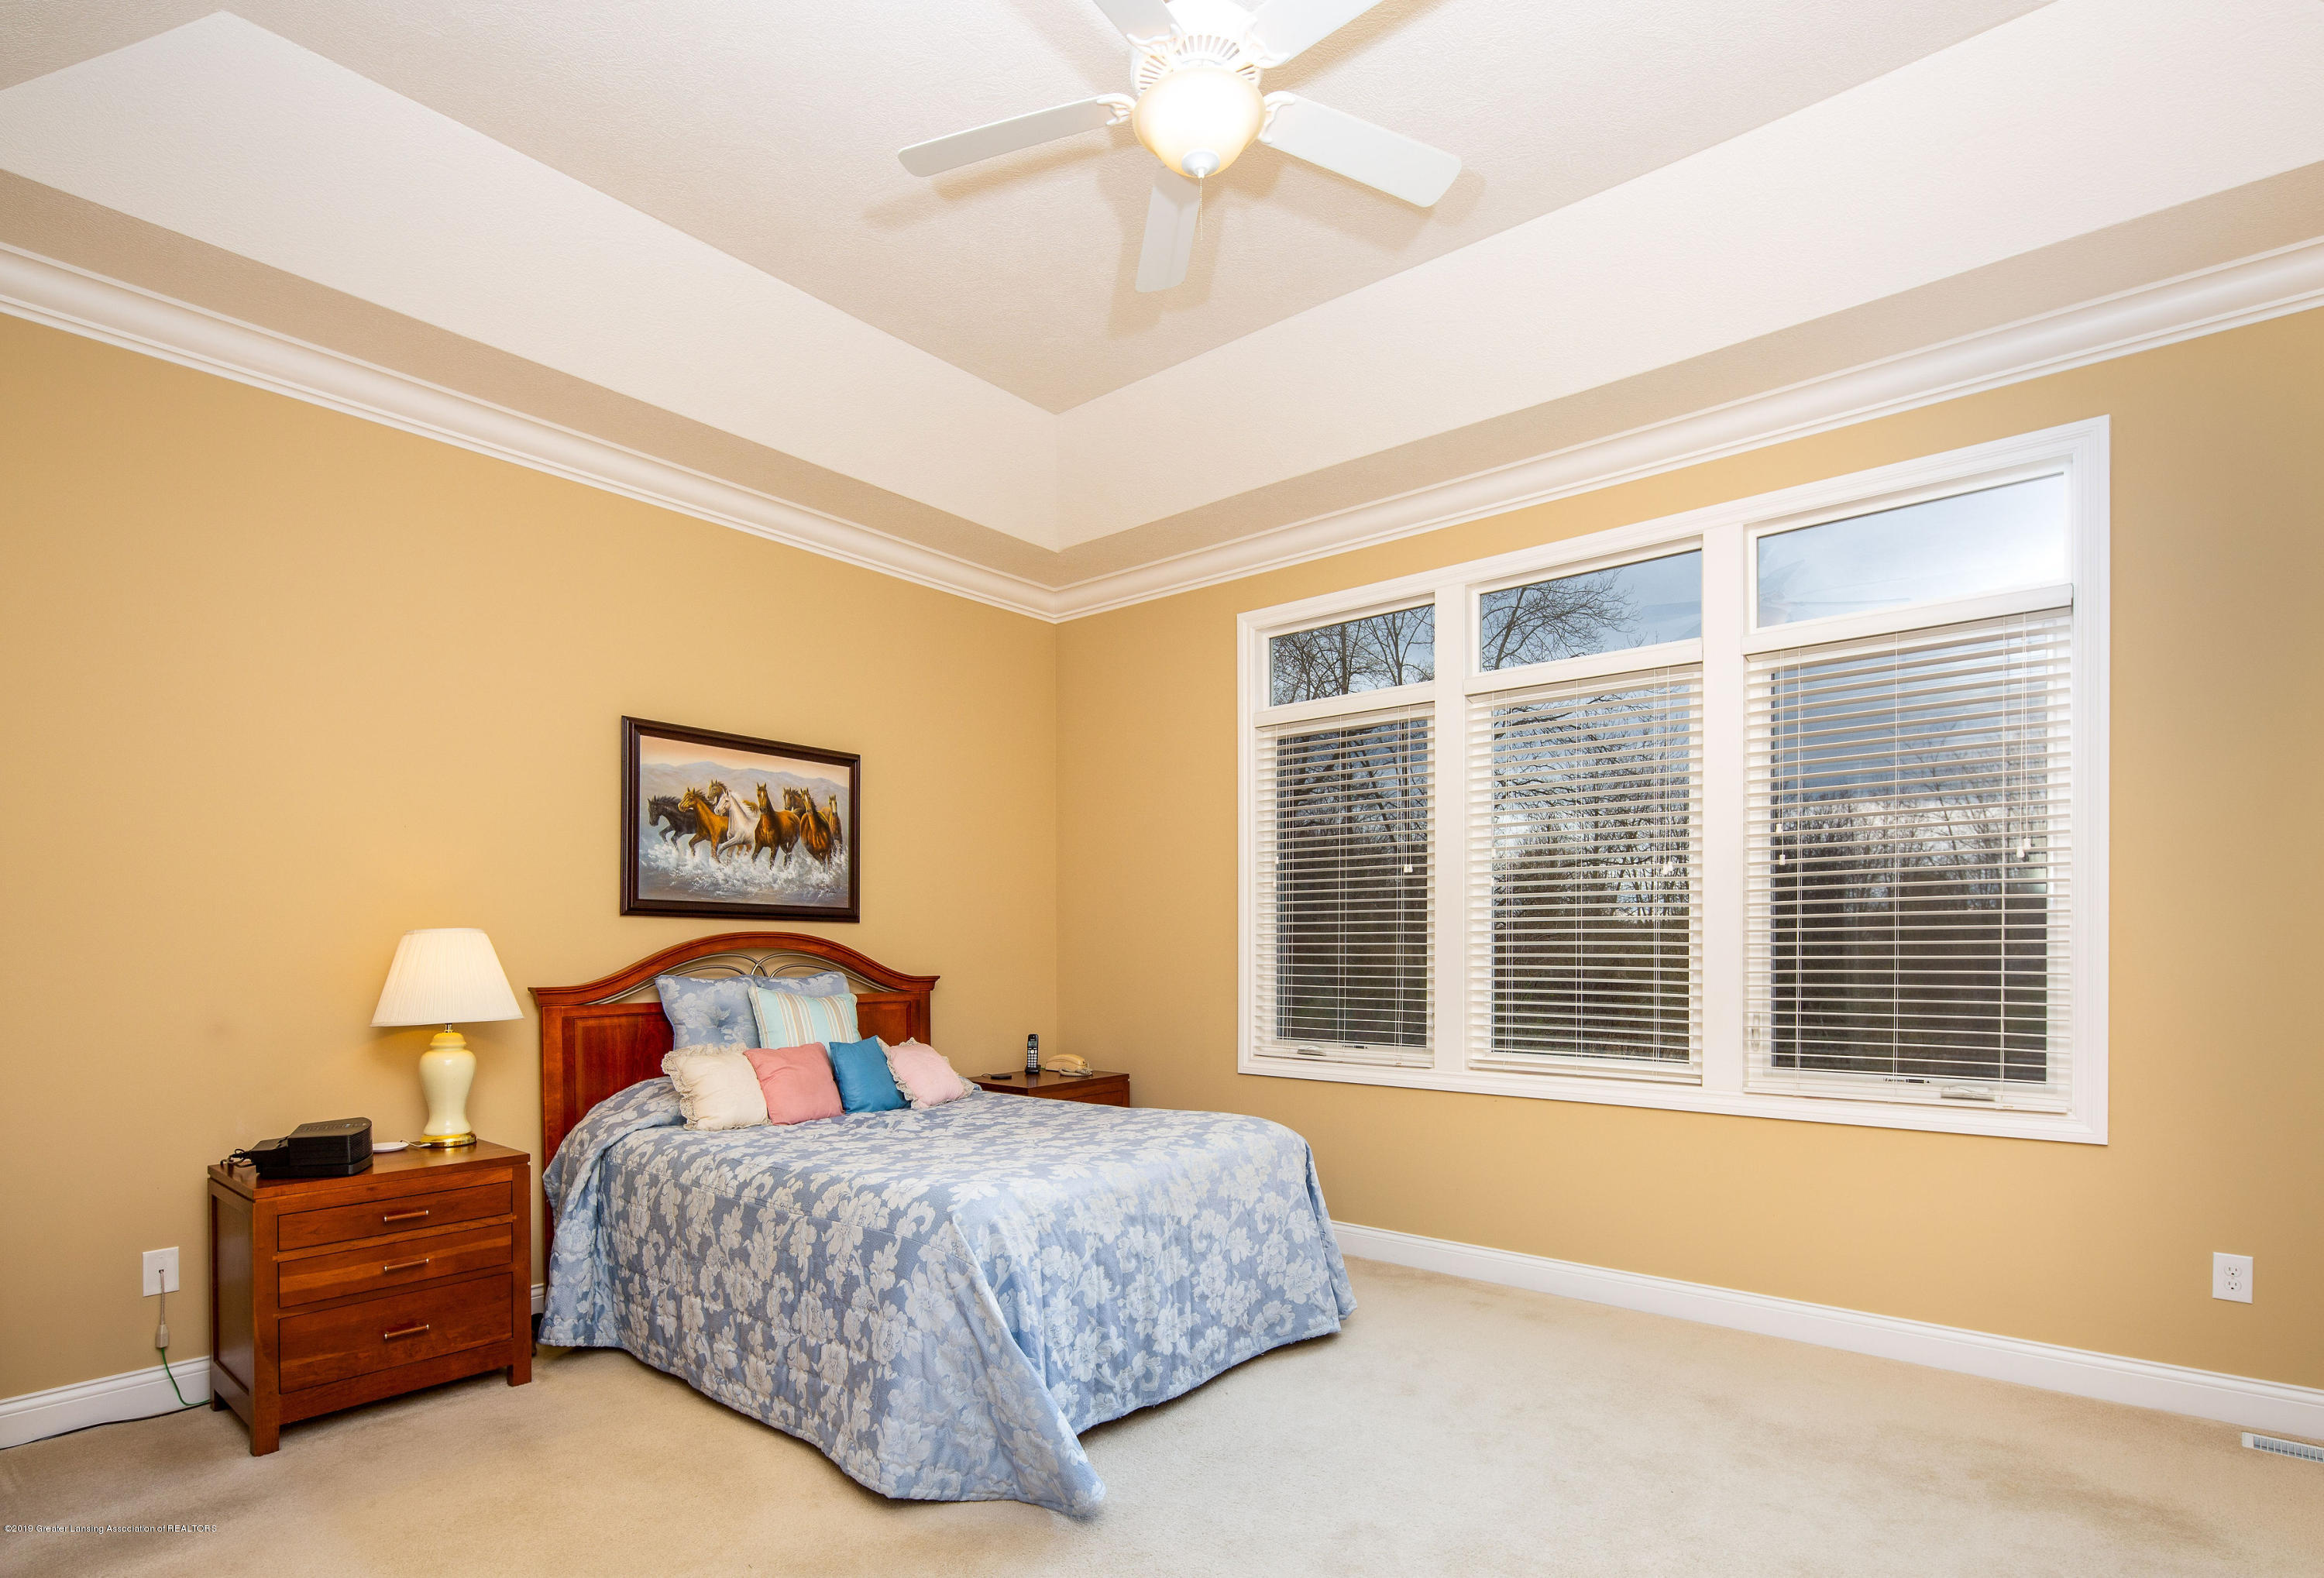 6257 Mereford Ct - 20190426-942A2769-Edit - 29